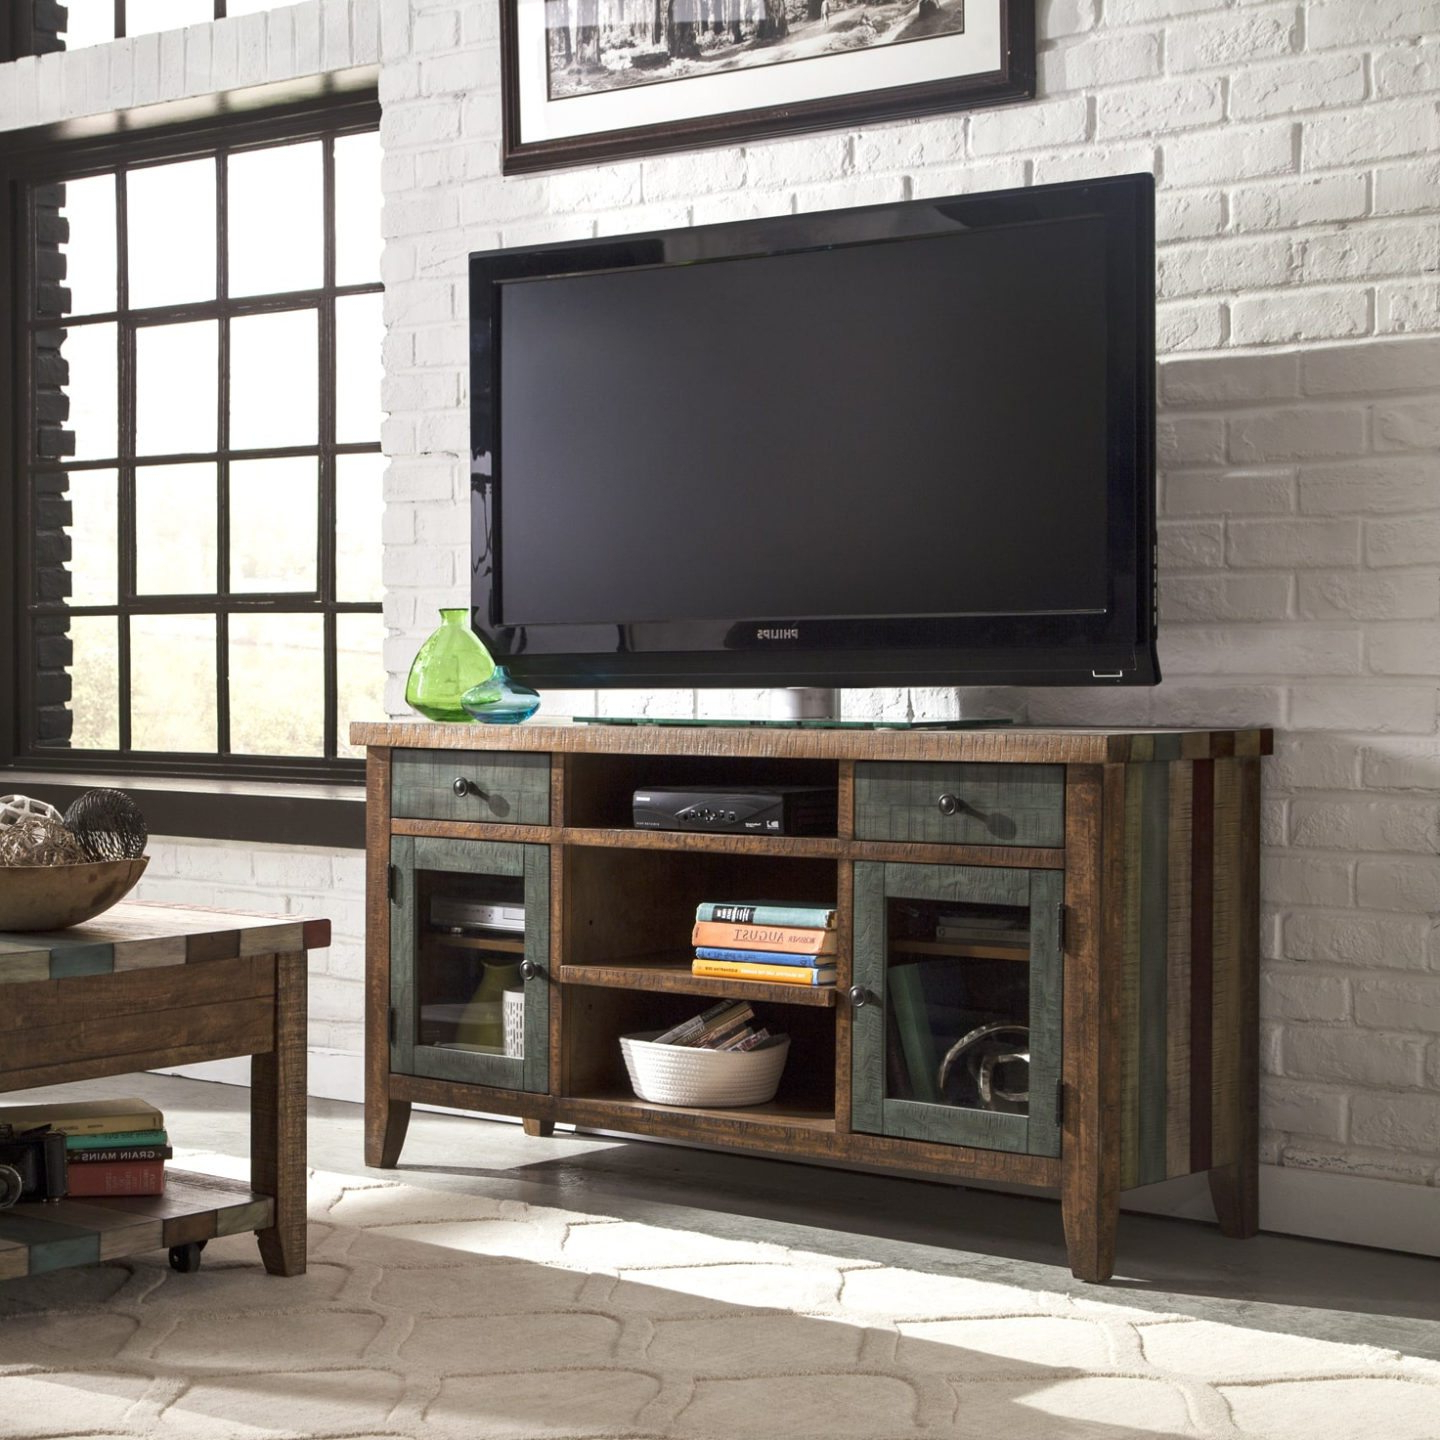 Tall Corner Tv Stand Ikea Lack Flat Screen Mount Whalen Walmart For Inside Well Known Tv Stands 40 Inches Wide (View 11 of 20)